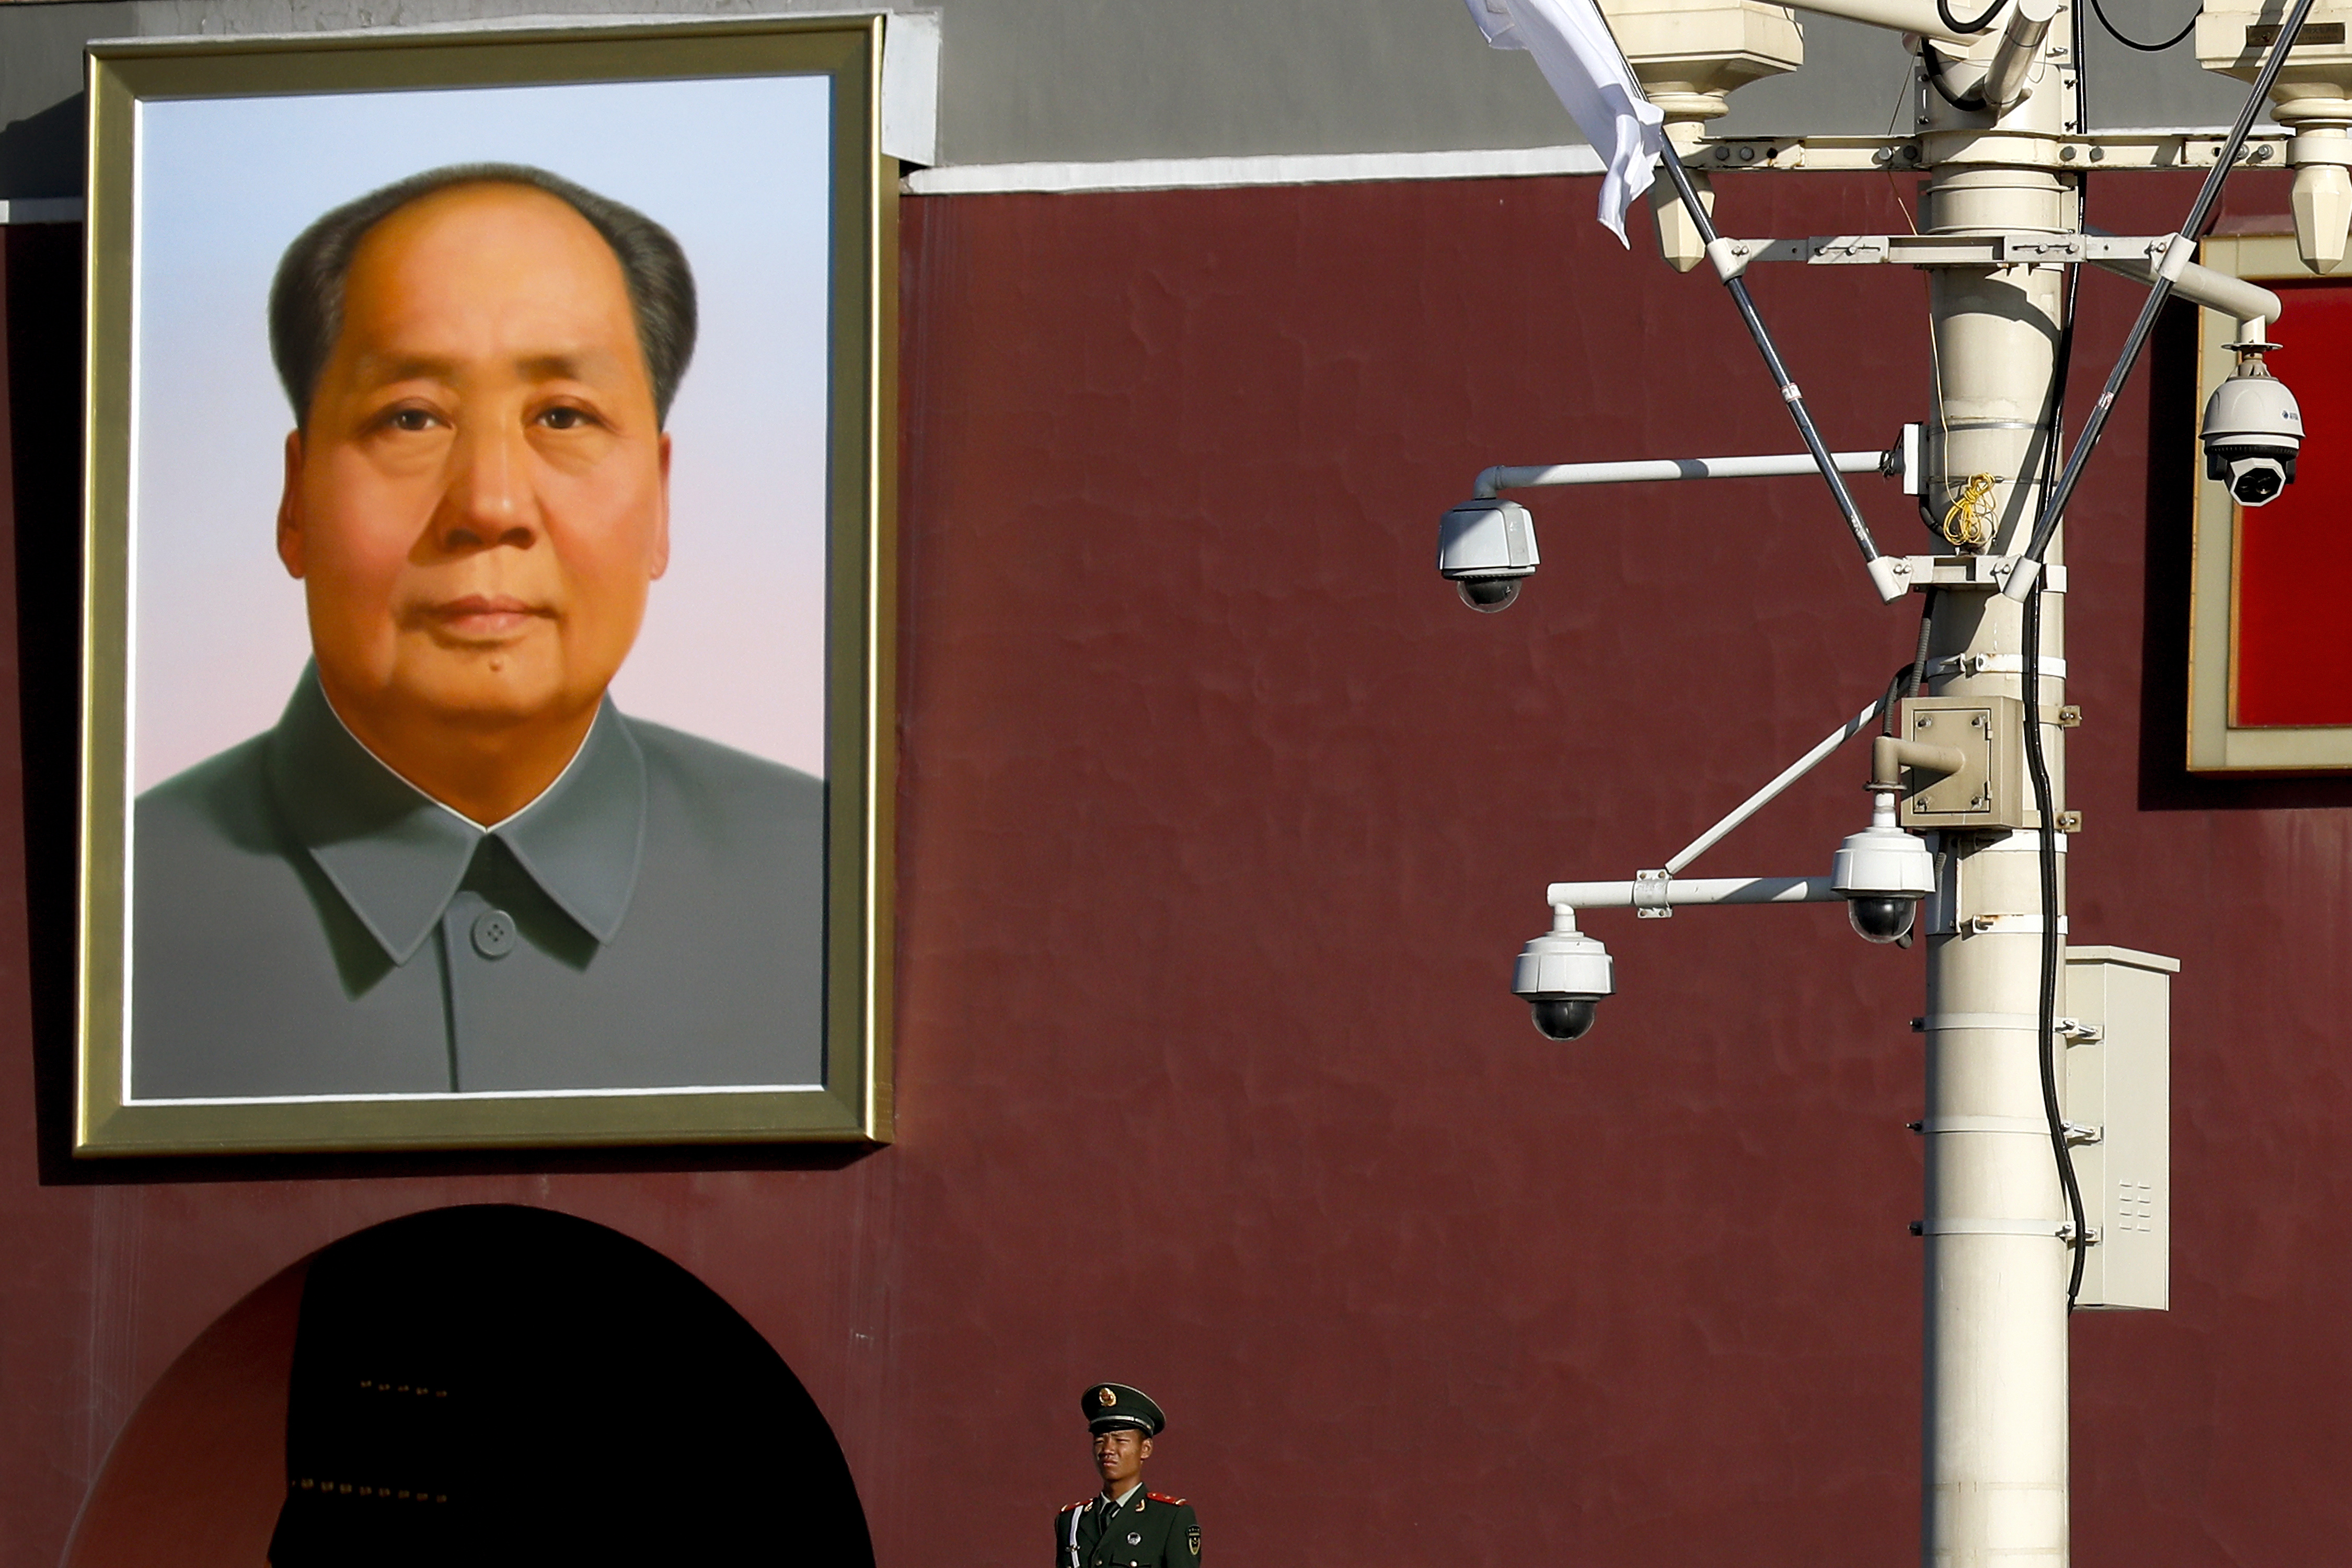 a pole with multipul surveillance cameras in front of a framed portrait of Chairman Mao on a red wall